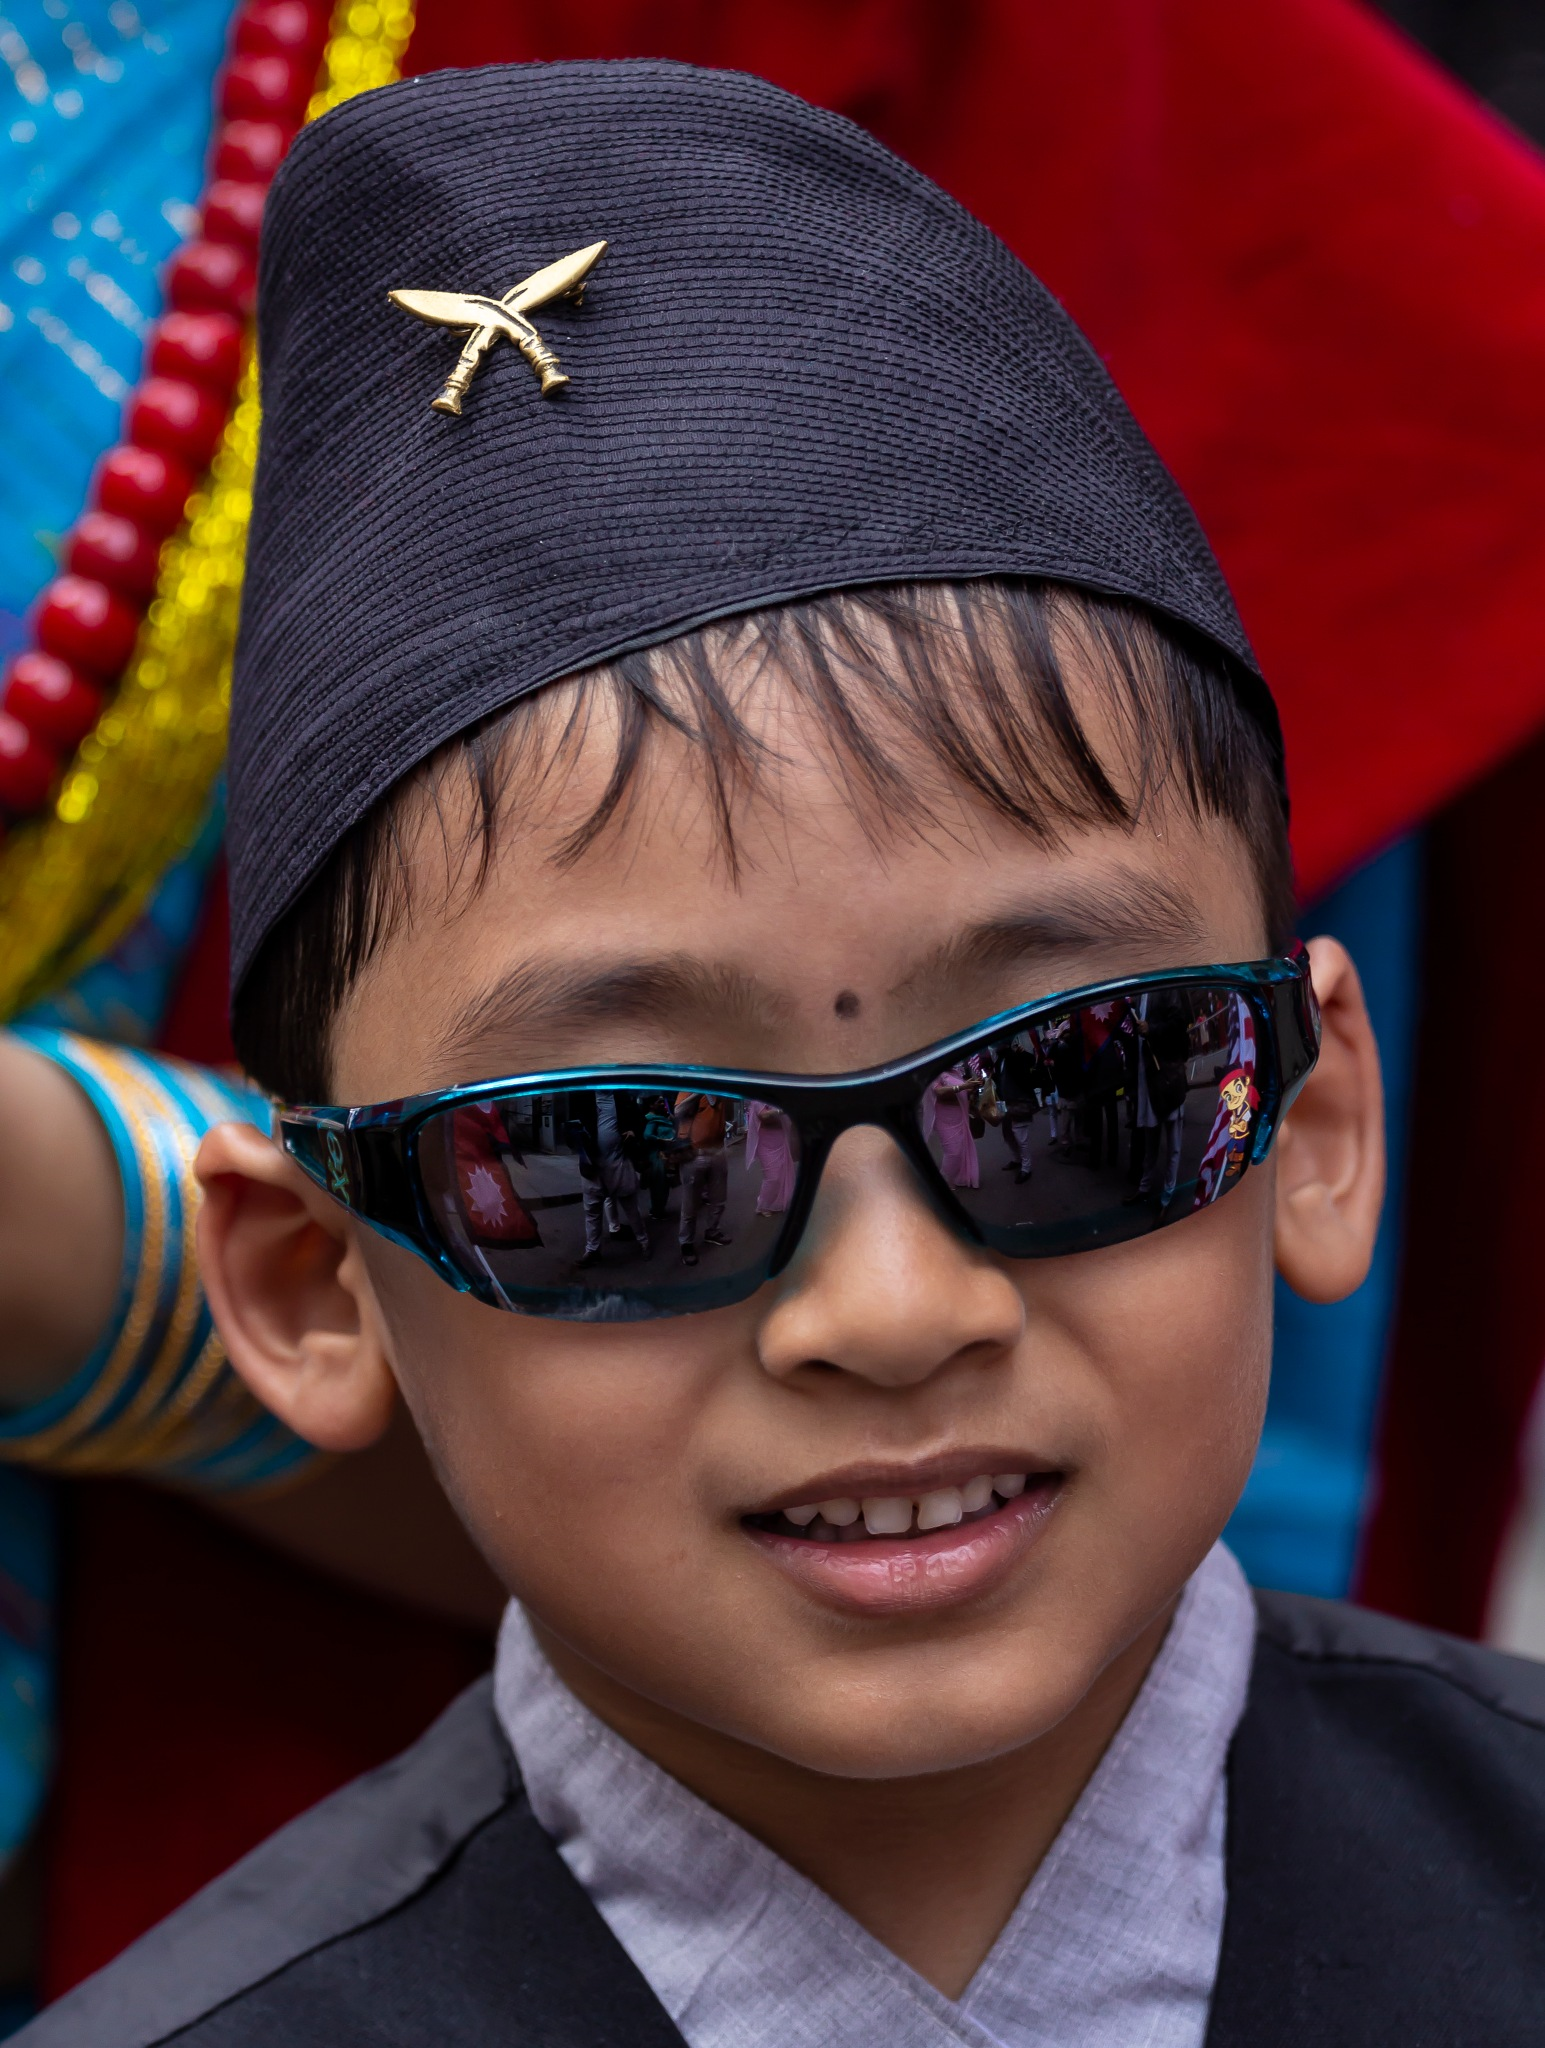 Nepal Day NYC 5_20_18 Boy in Tradtional Attire by robertullmann